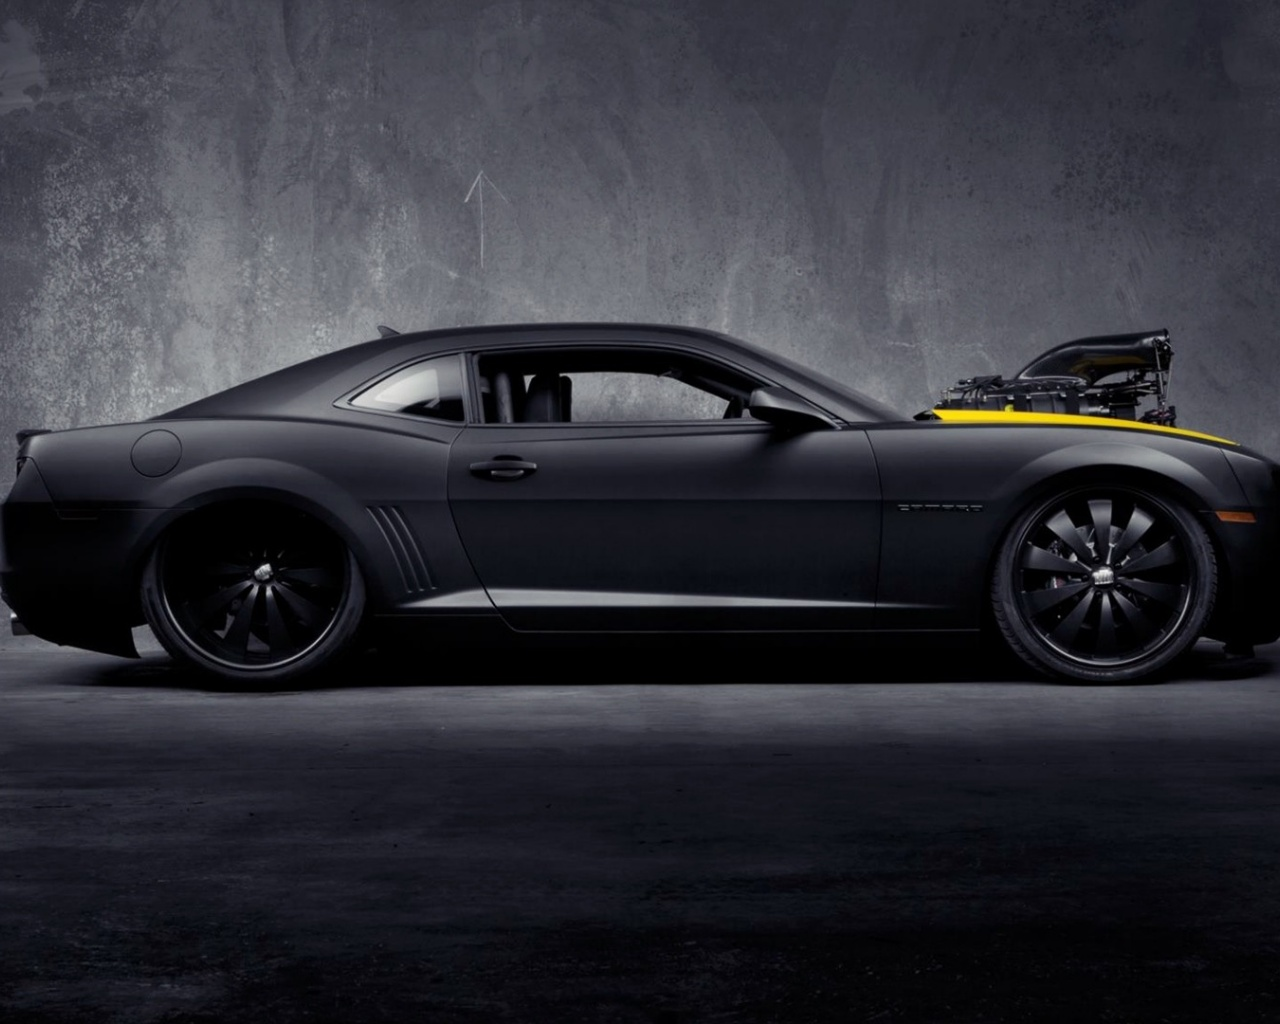 1280x1024 Matte Black Chevrolet Camaro Ss Desktop Pc And